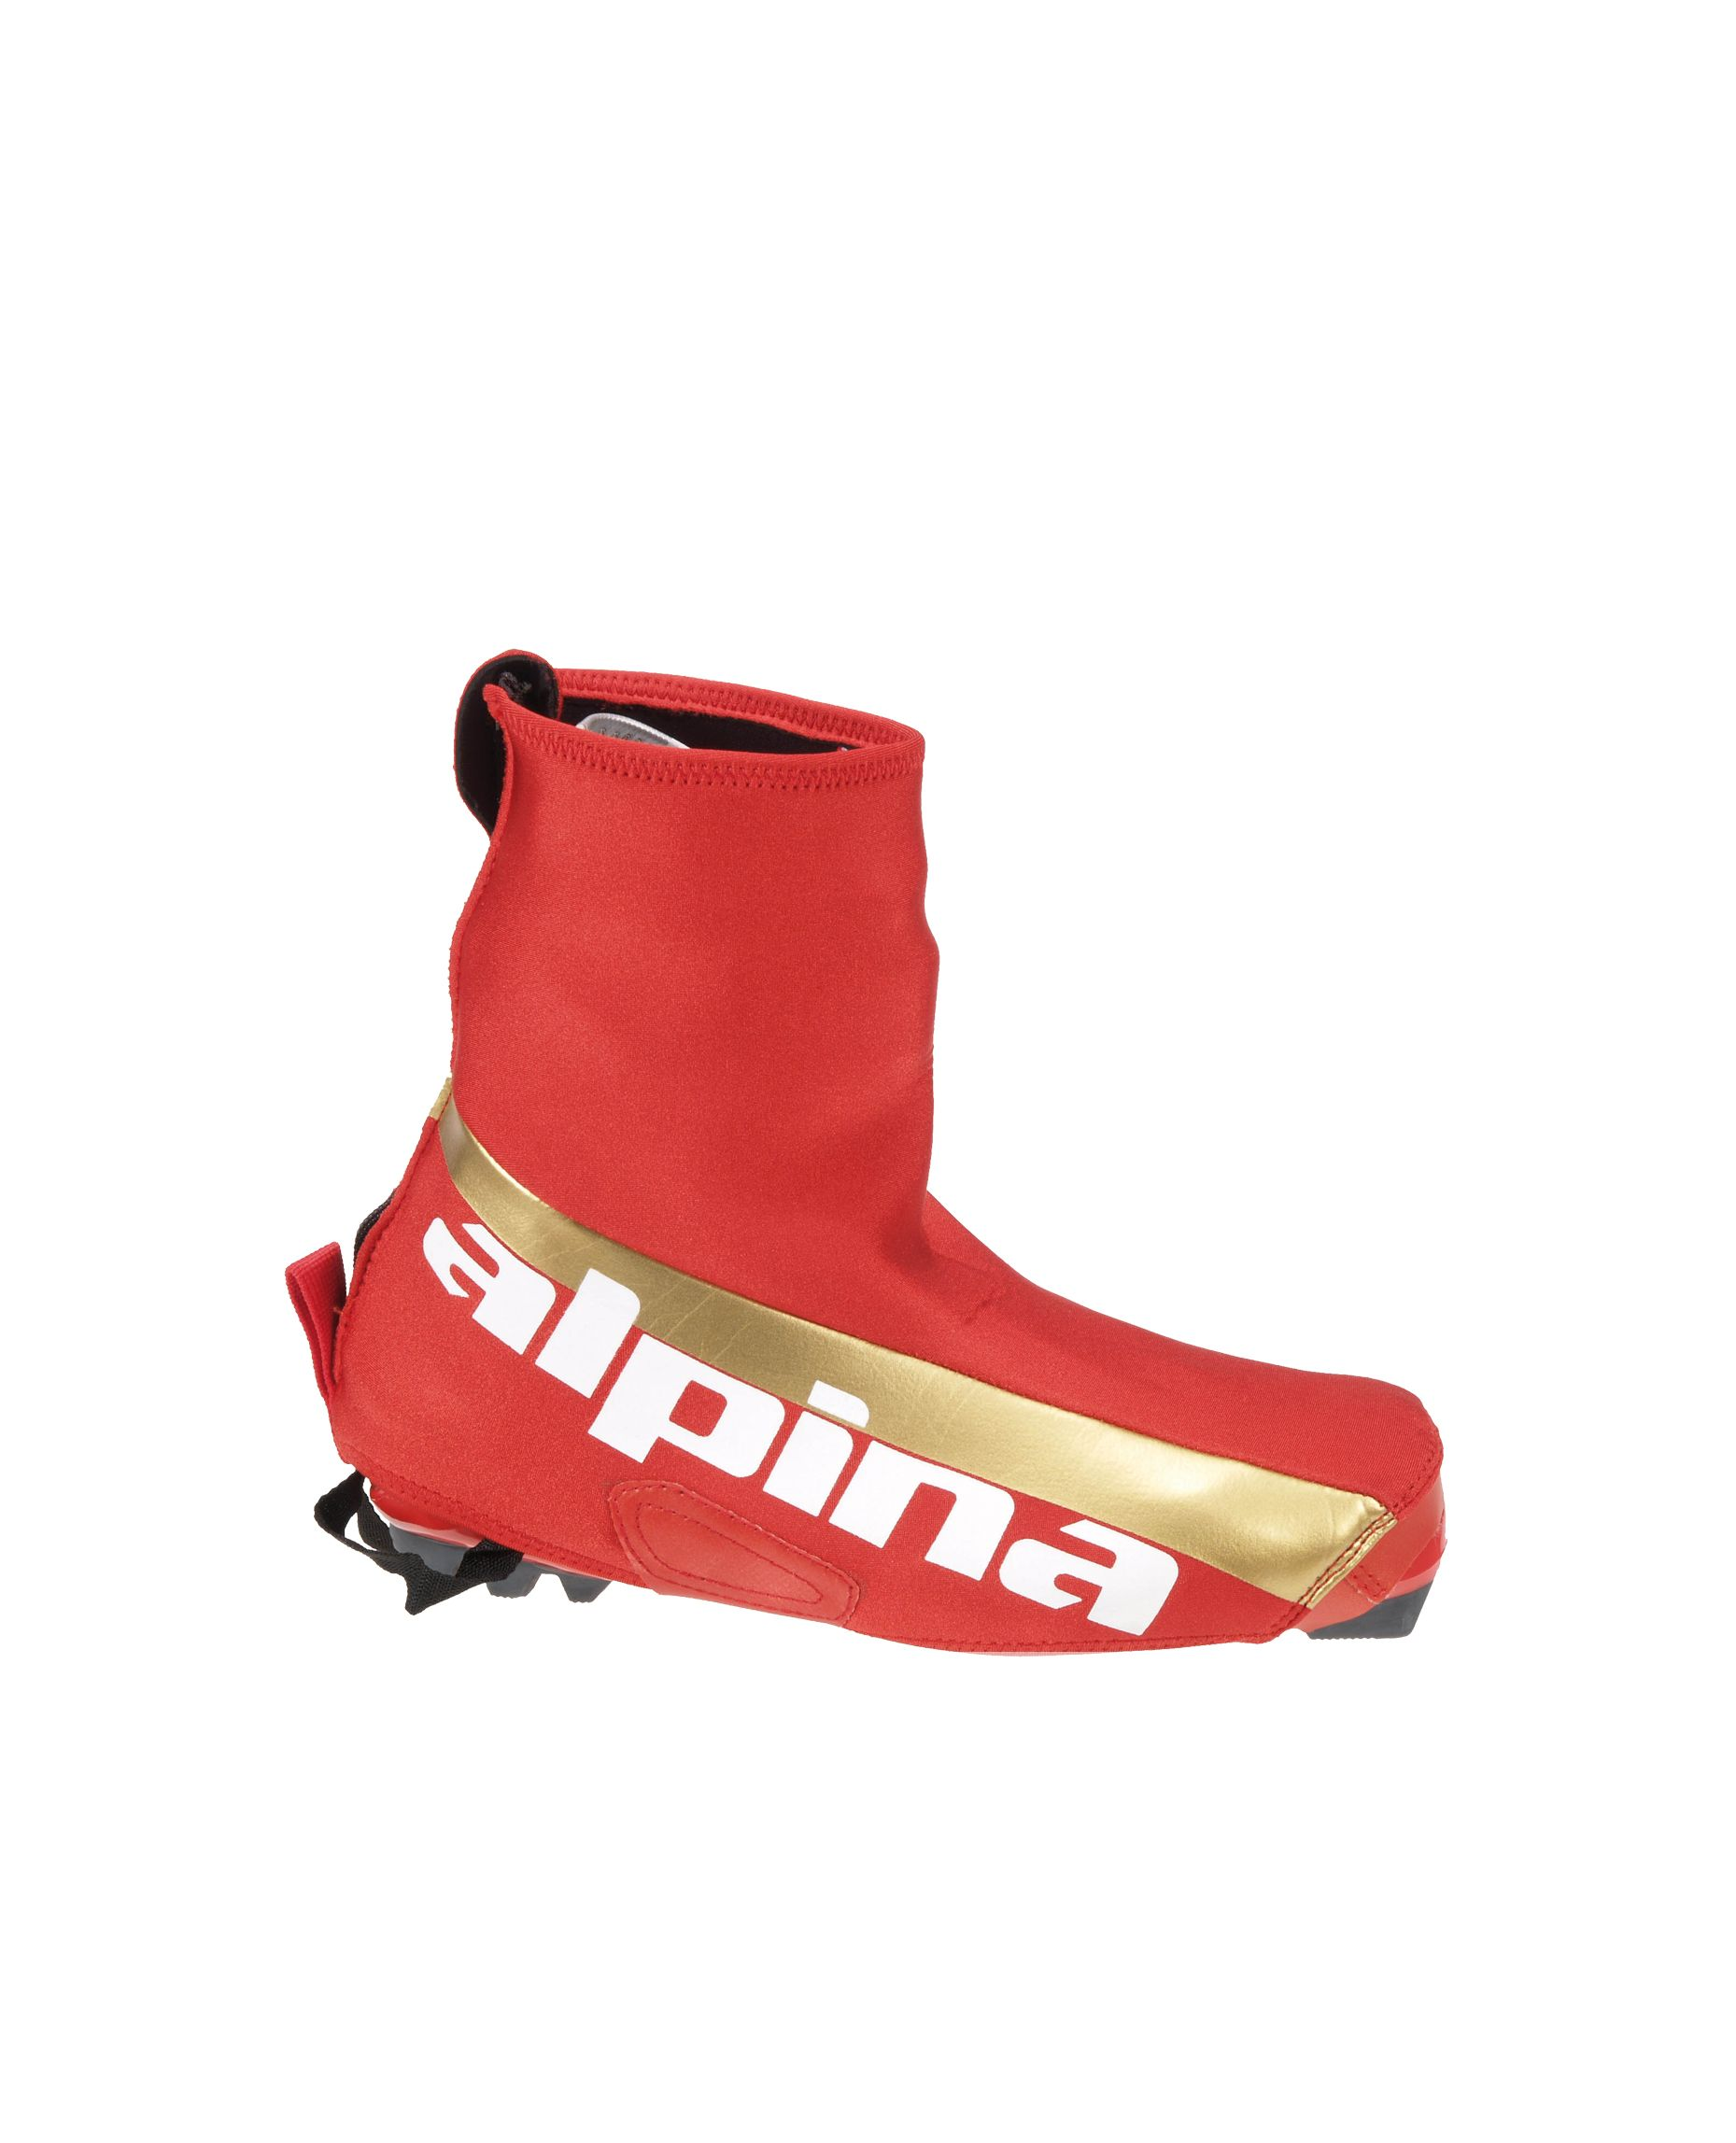 photo: Alpina Overboot Elite nordic touring boot